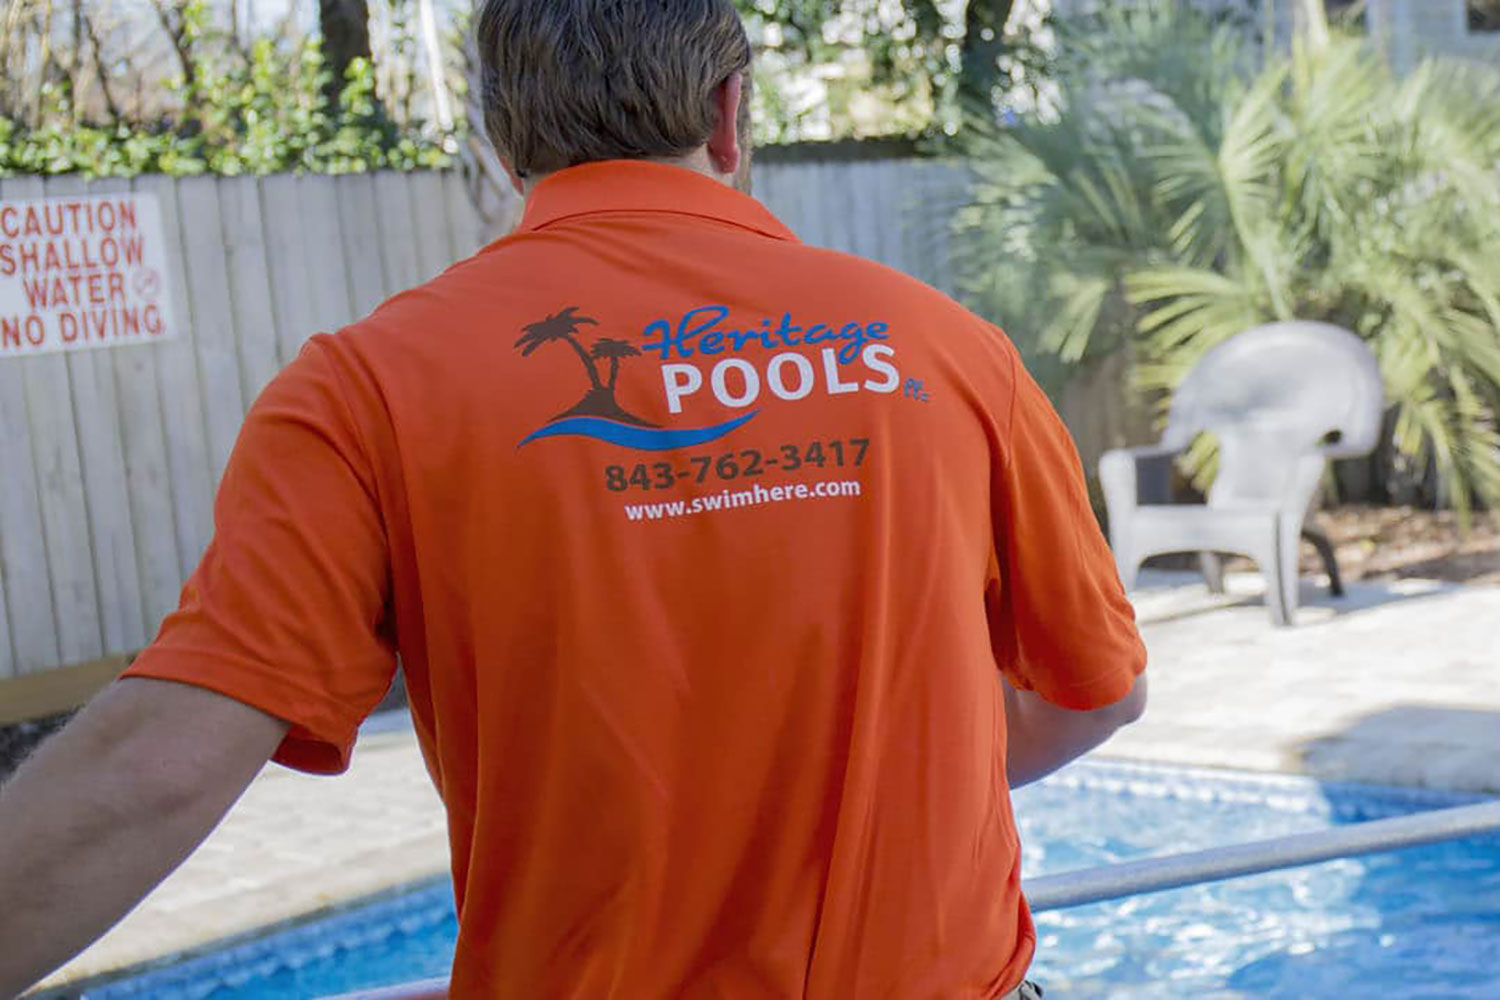 OUR TECHNICIANS - Heritage Pools, LLC